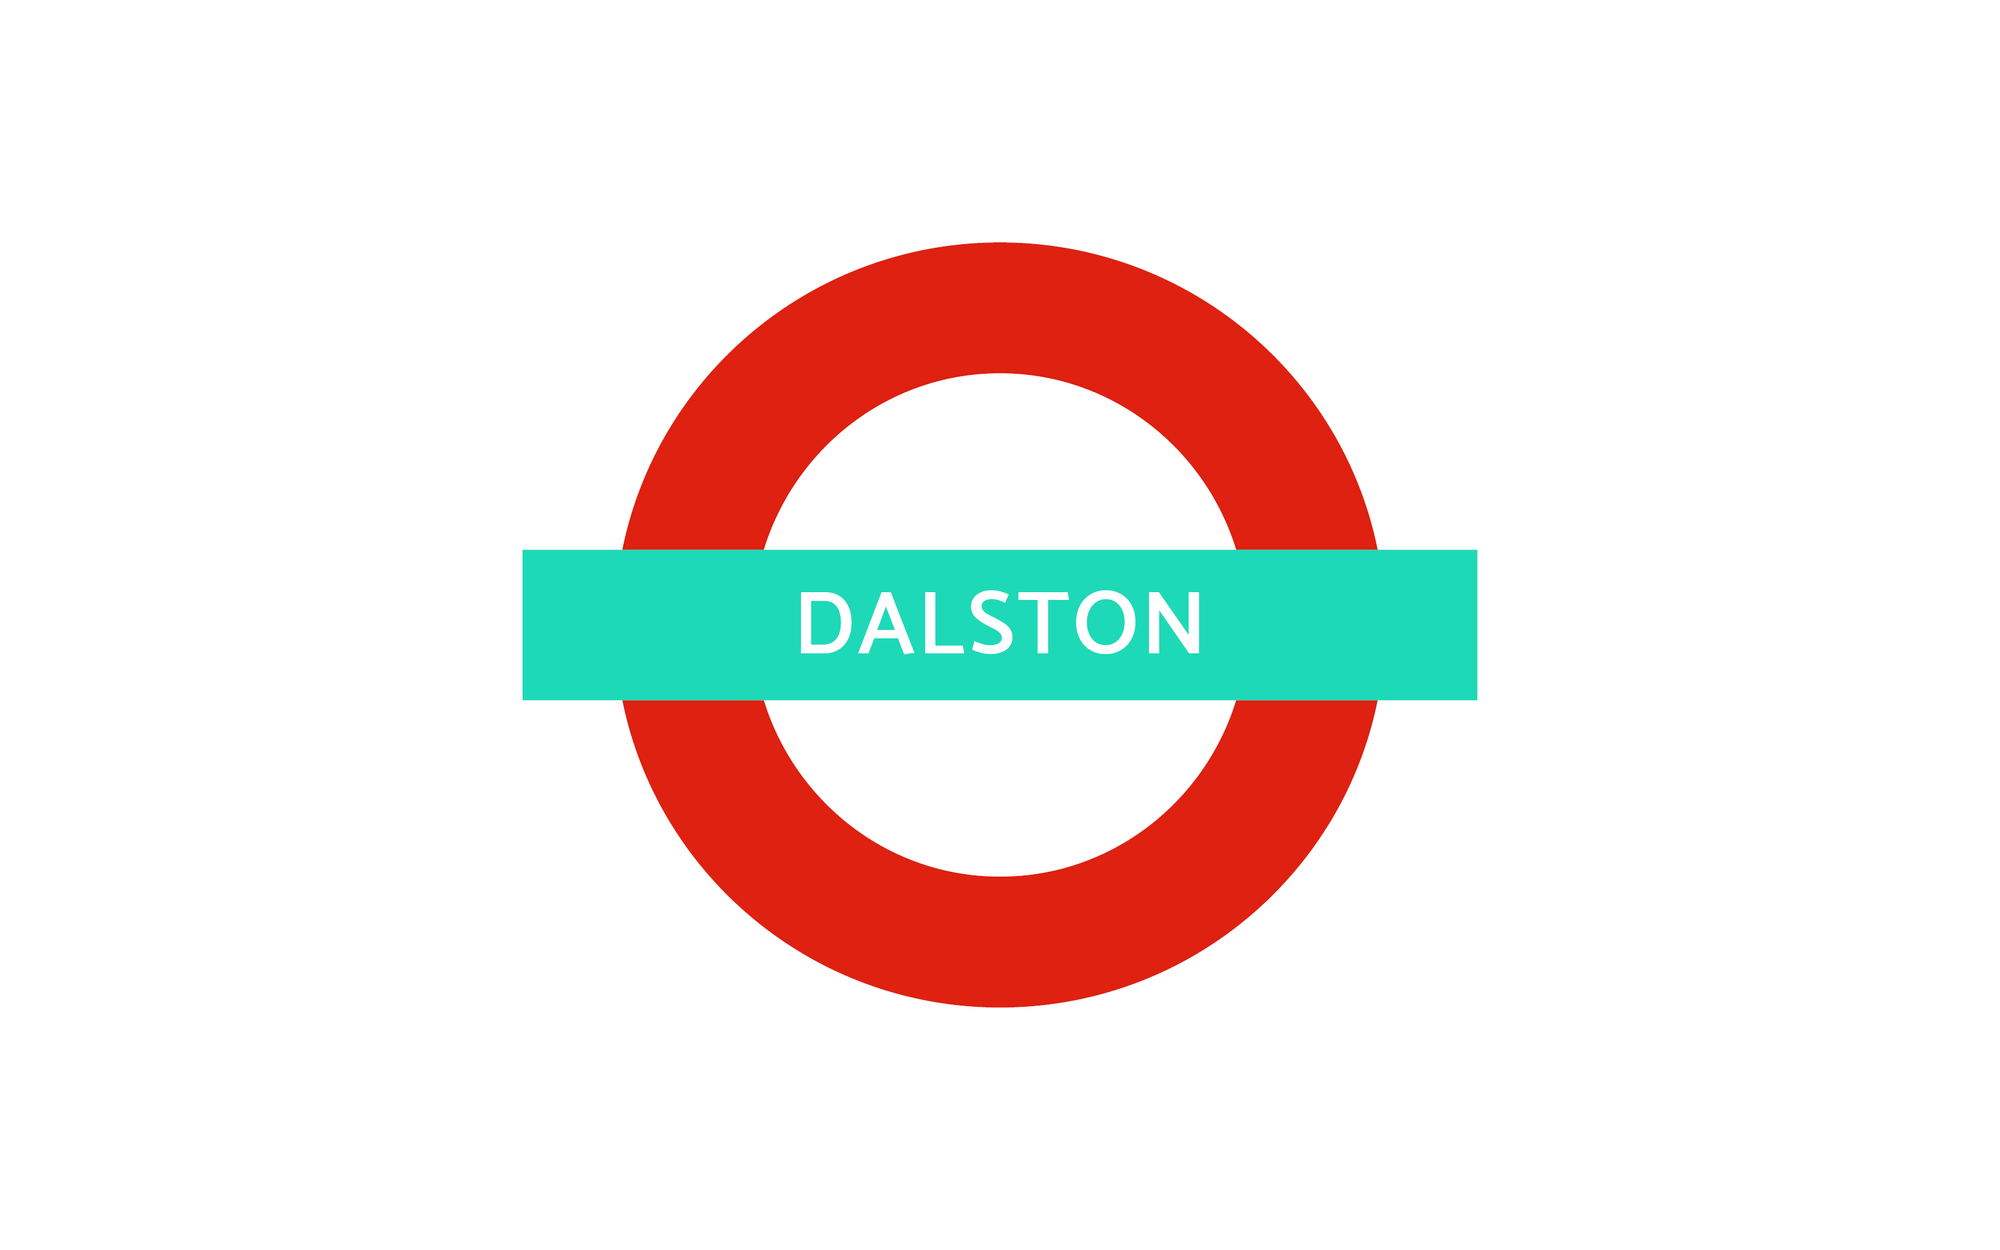 Living in Dalston